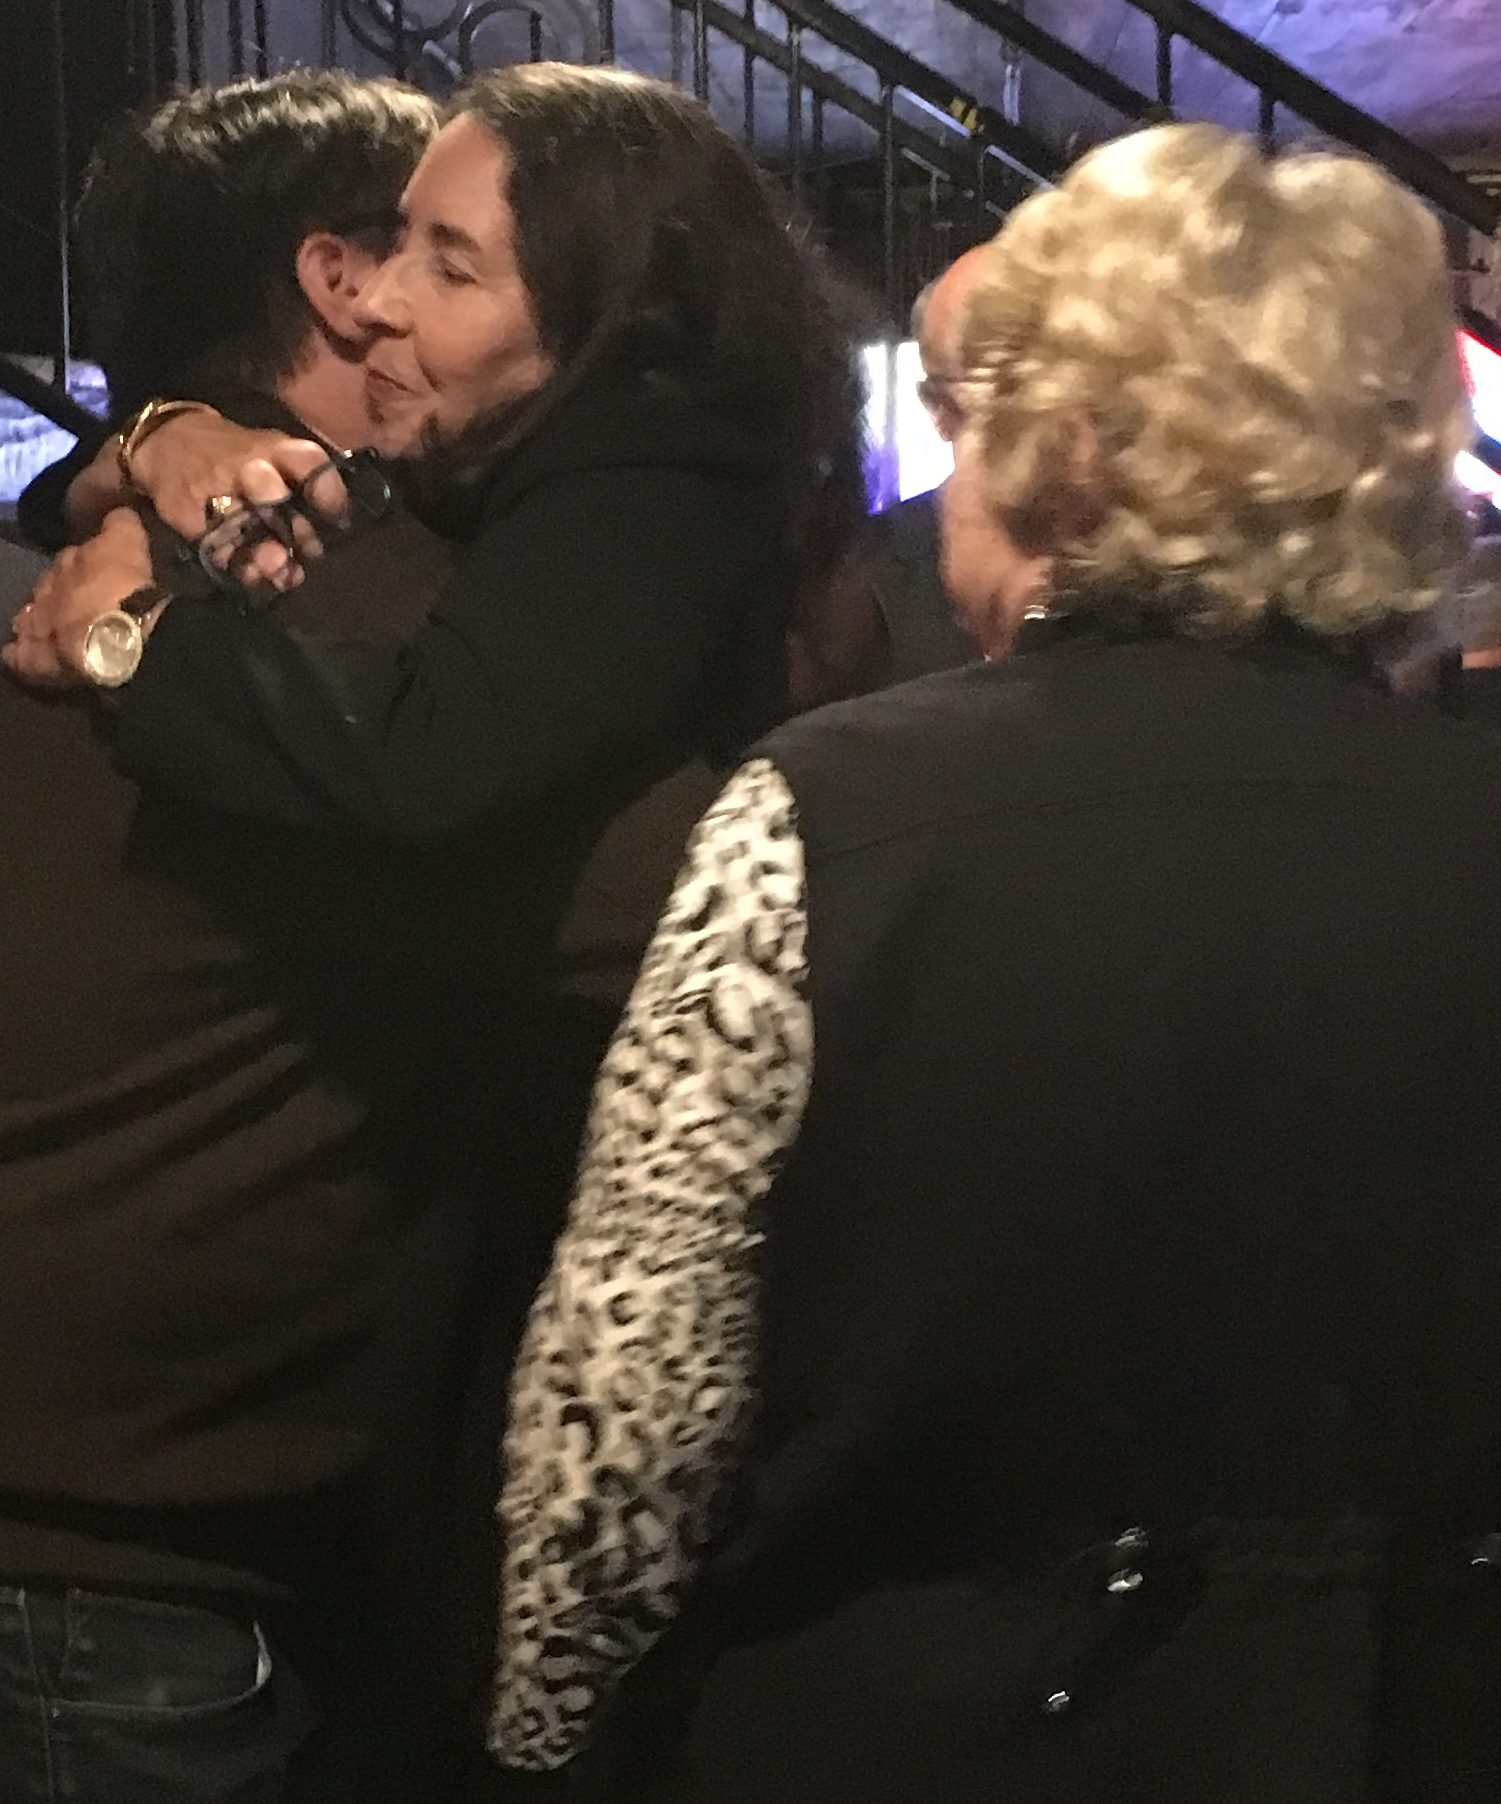 Capi Peck hugs a supporter at Cajun's Wharf. (AMP photo by Shelby Styron)